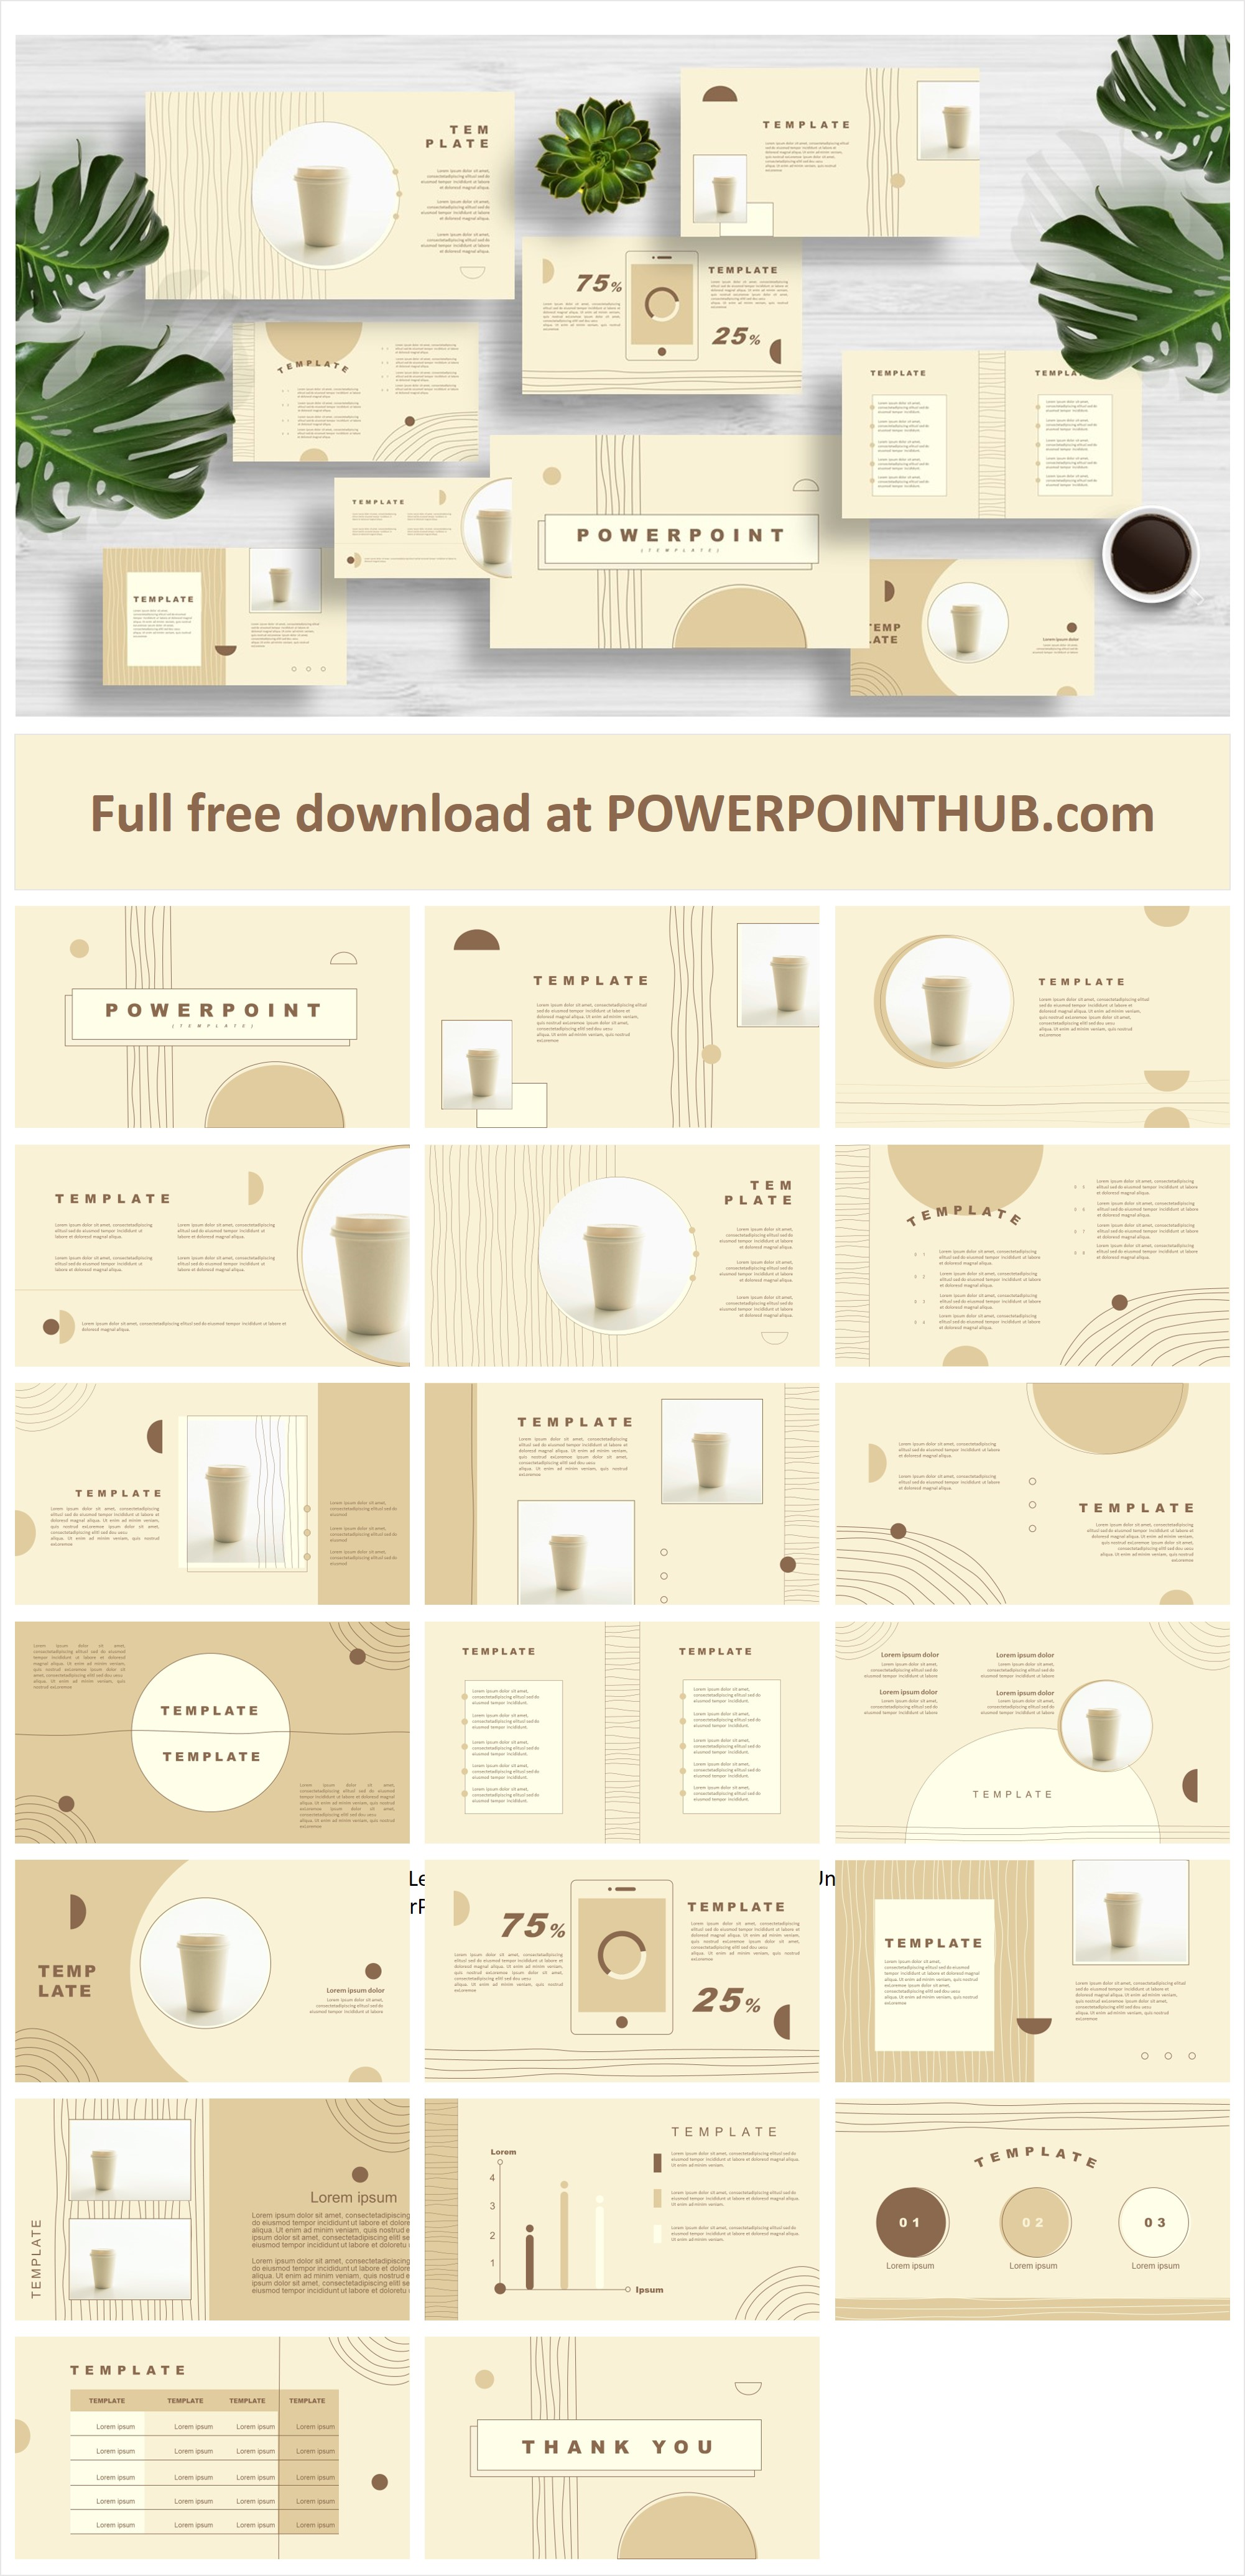 Brown Minimal - Free PowerPoint Template with yellow and brown colors. This is multipurpose purpose presentation that helps you impress your audience.